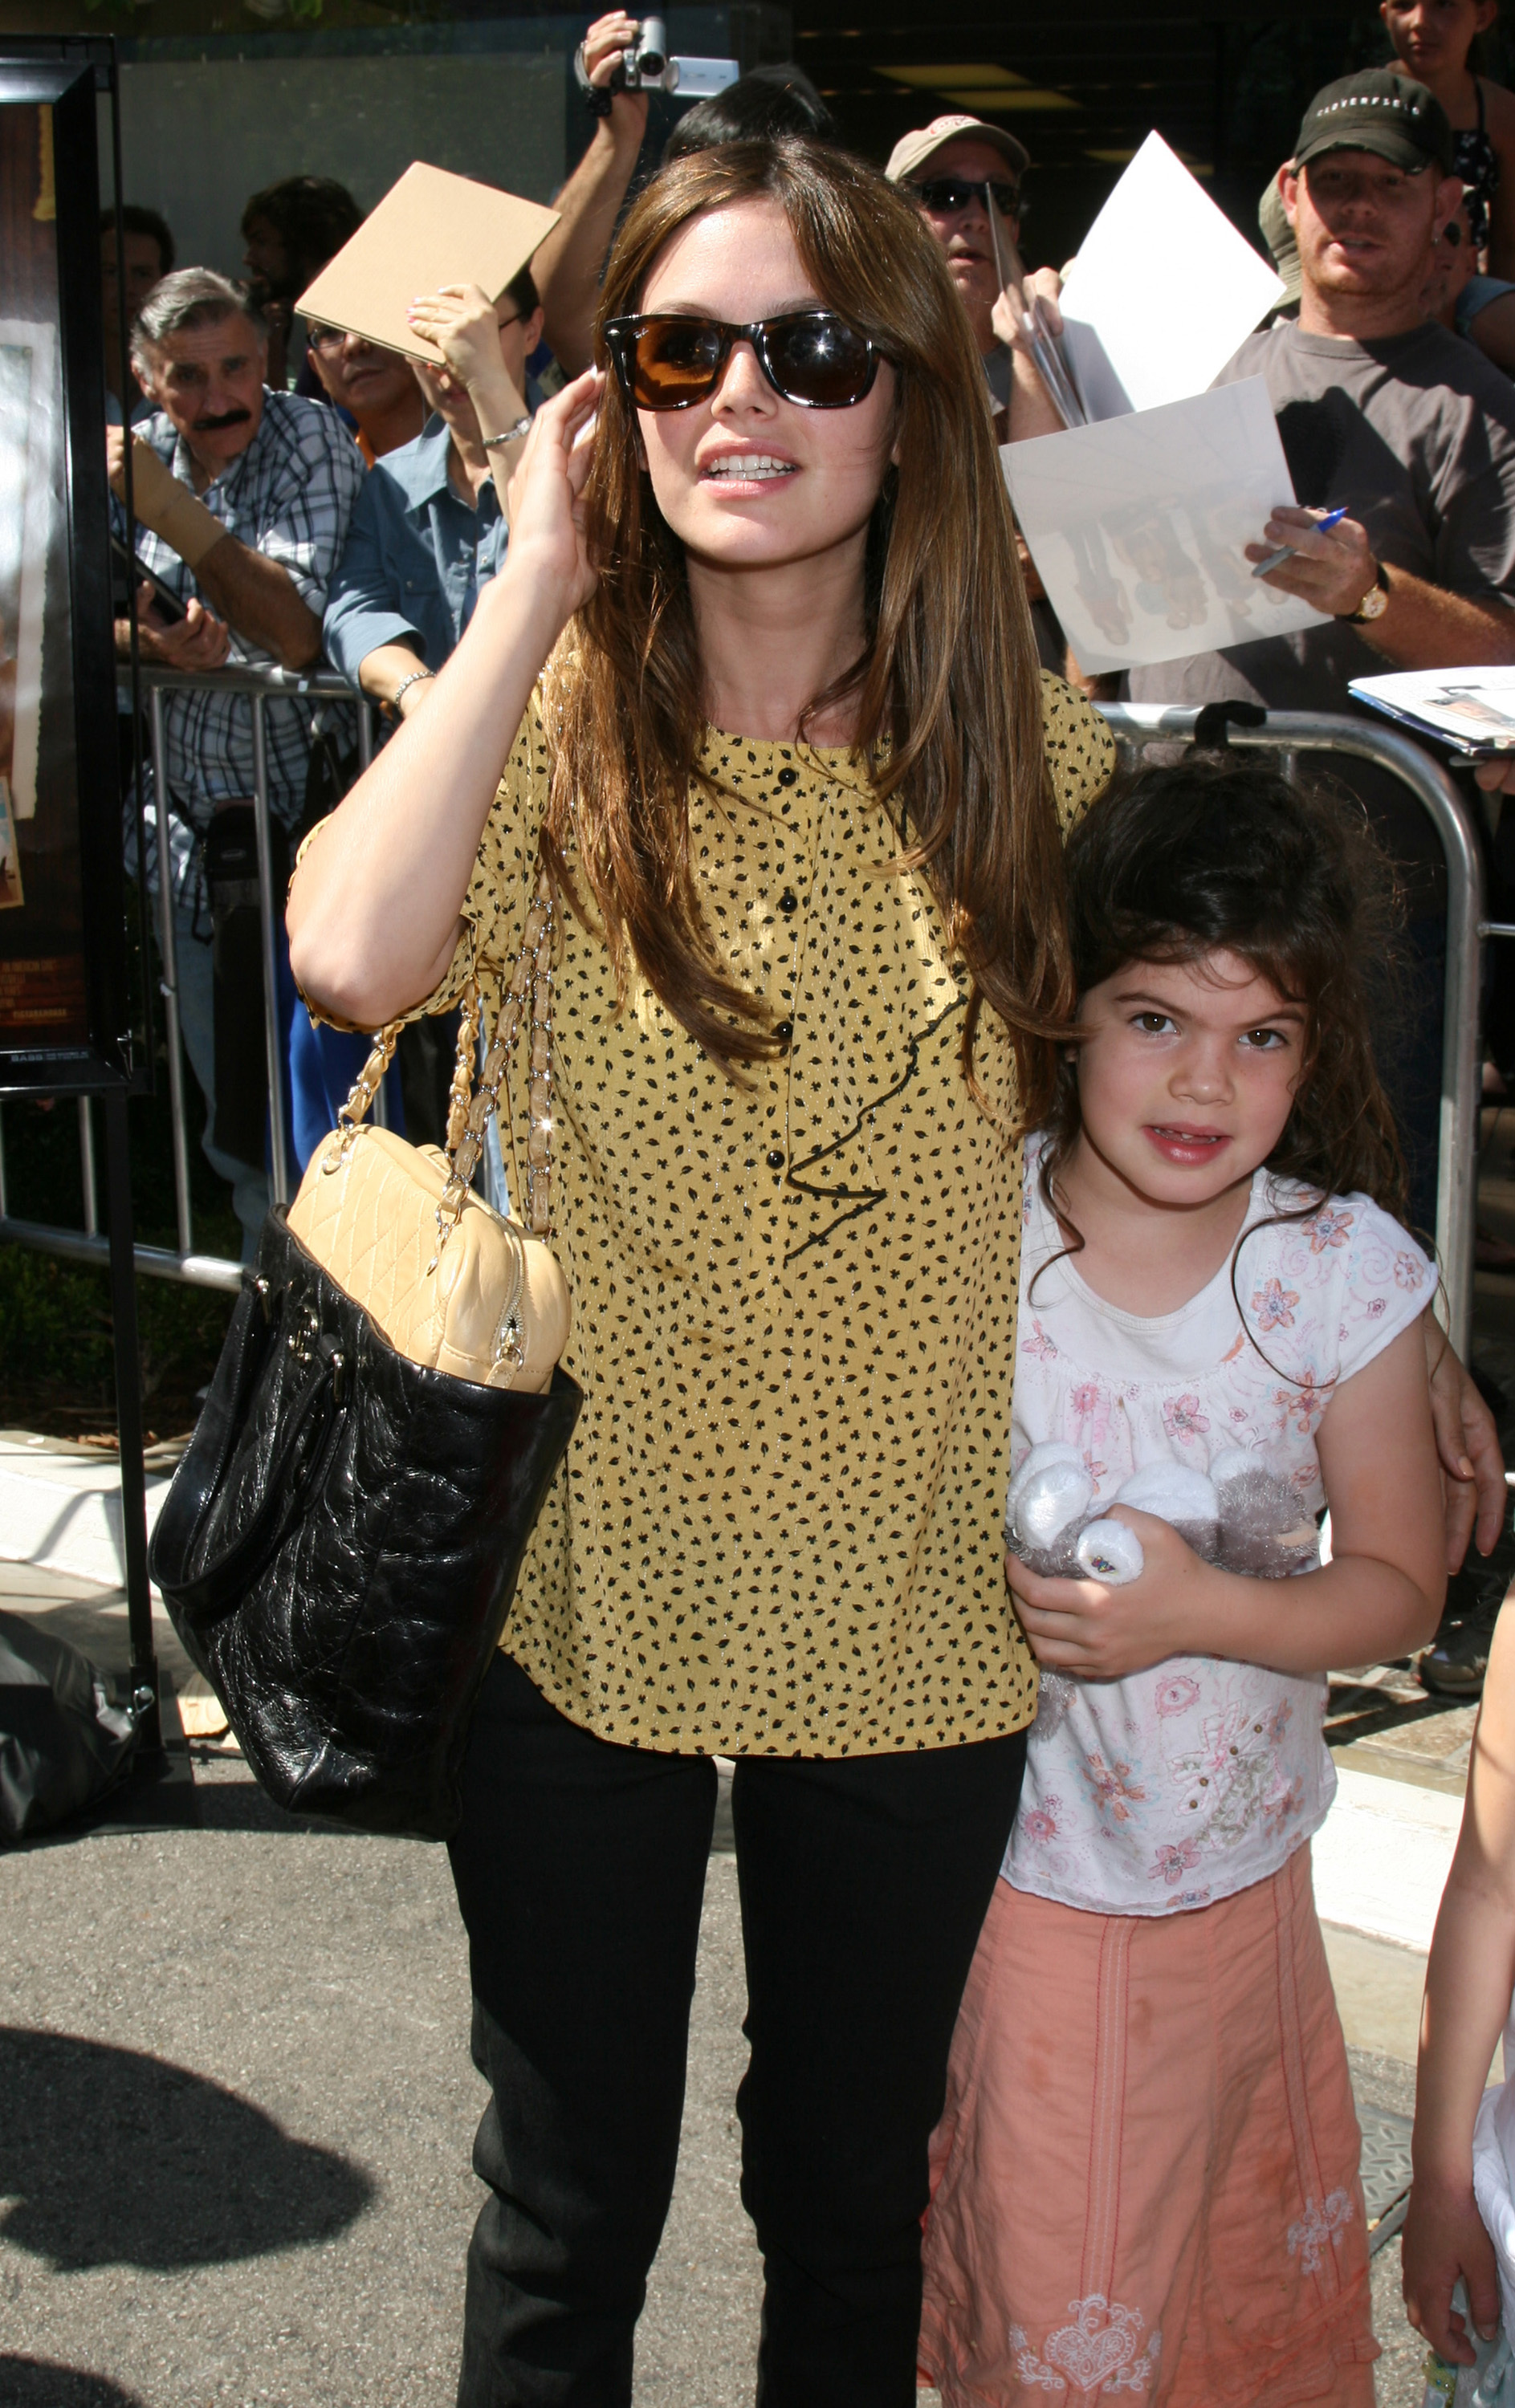 Rachel Bilson with her sister Premiere of Kit Kittredge held at The Grove Los Angeles, California - 14.06.08  Featuring: Rachel Bilson with her sister Where: United States When: 14 Jun 2008 Credit: Nikki Nelson/ WENN